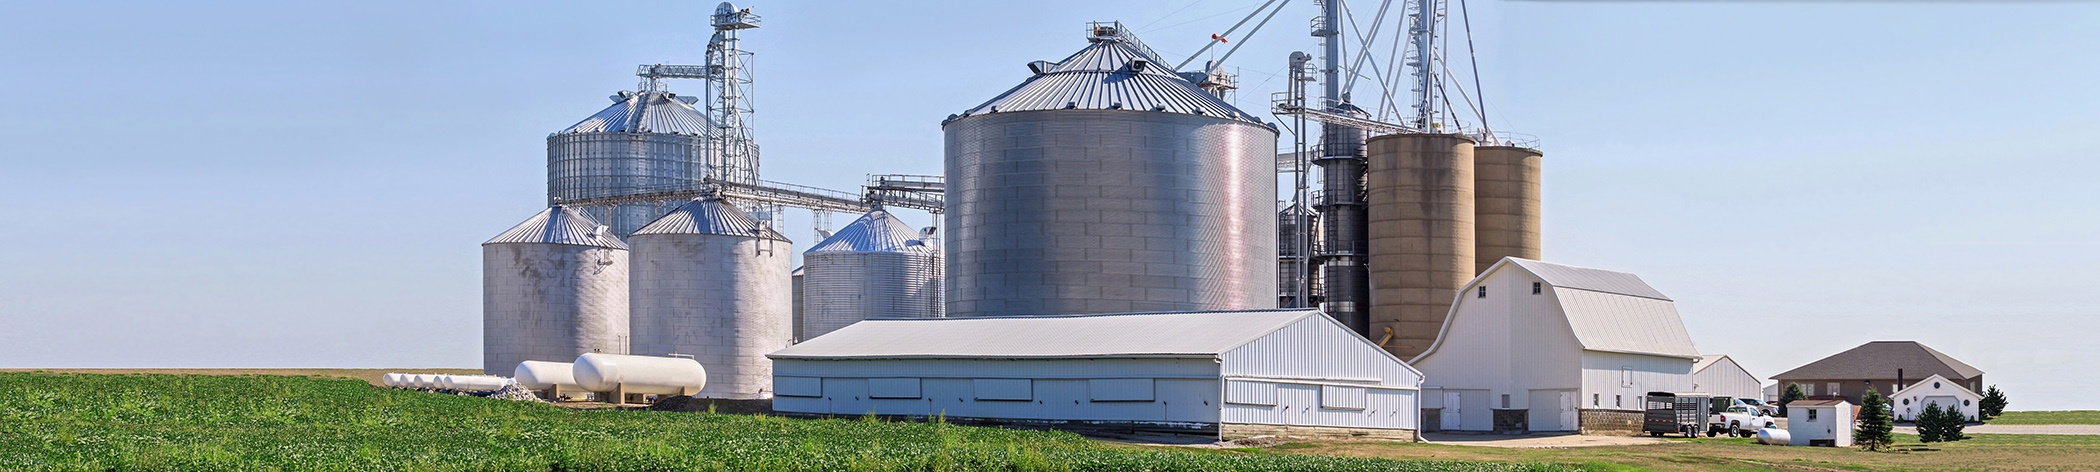 LPG Storage Tanks for Grain Drying and other Agriculture Applications___.jpg